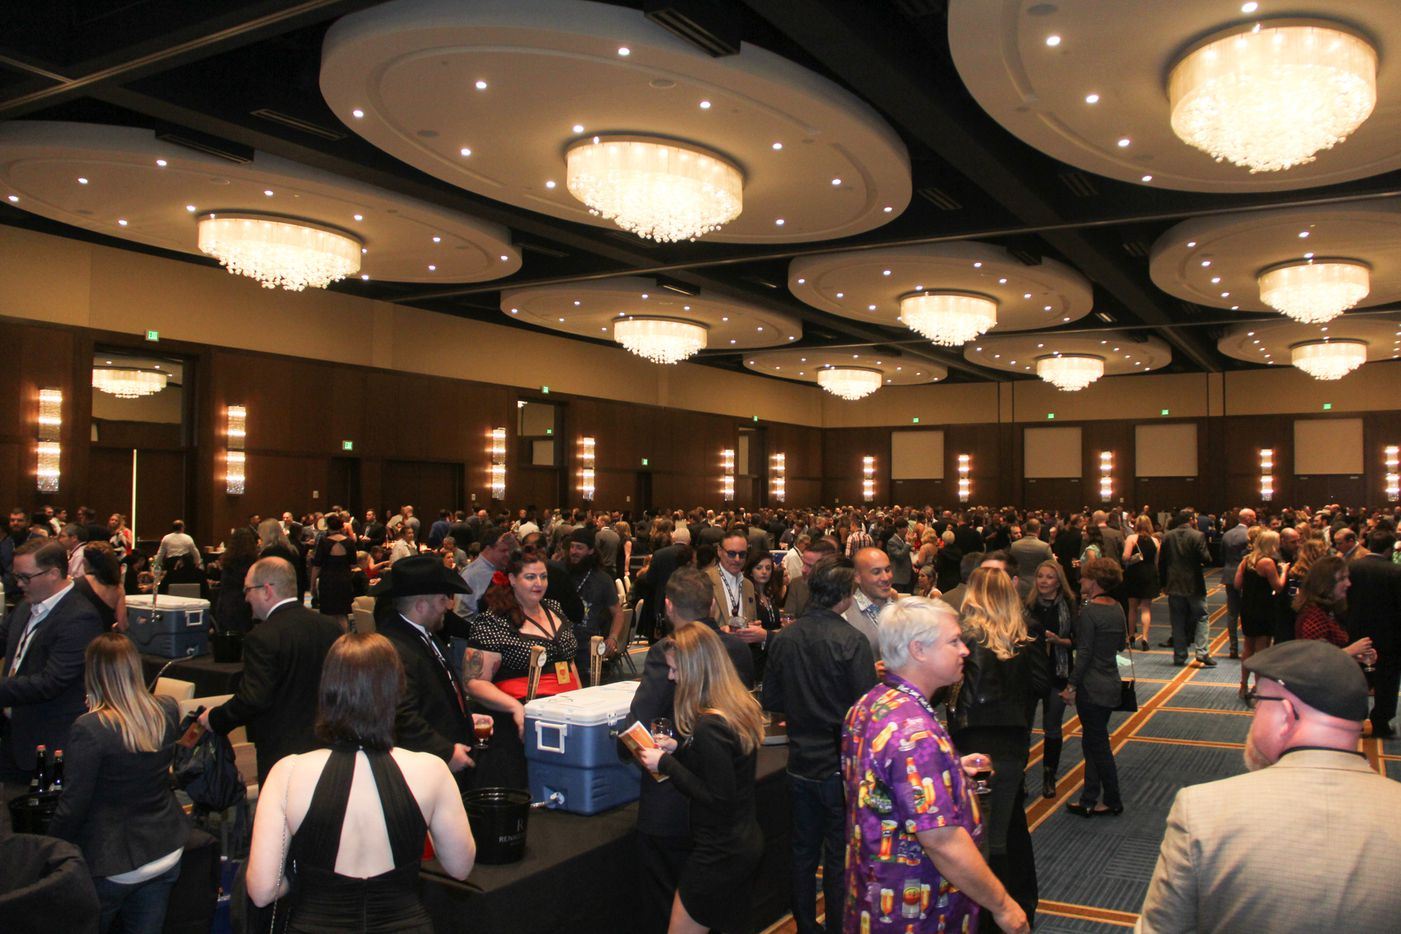 The second annual Brewers ball was held at the Renaissance Dallas hotel on Nov. 13. 2015.